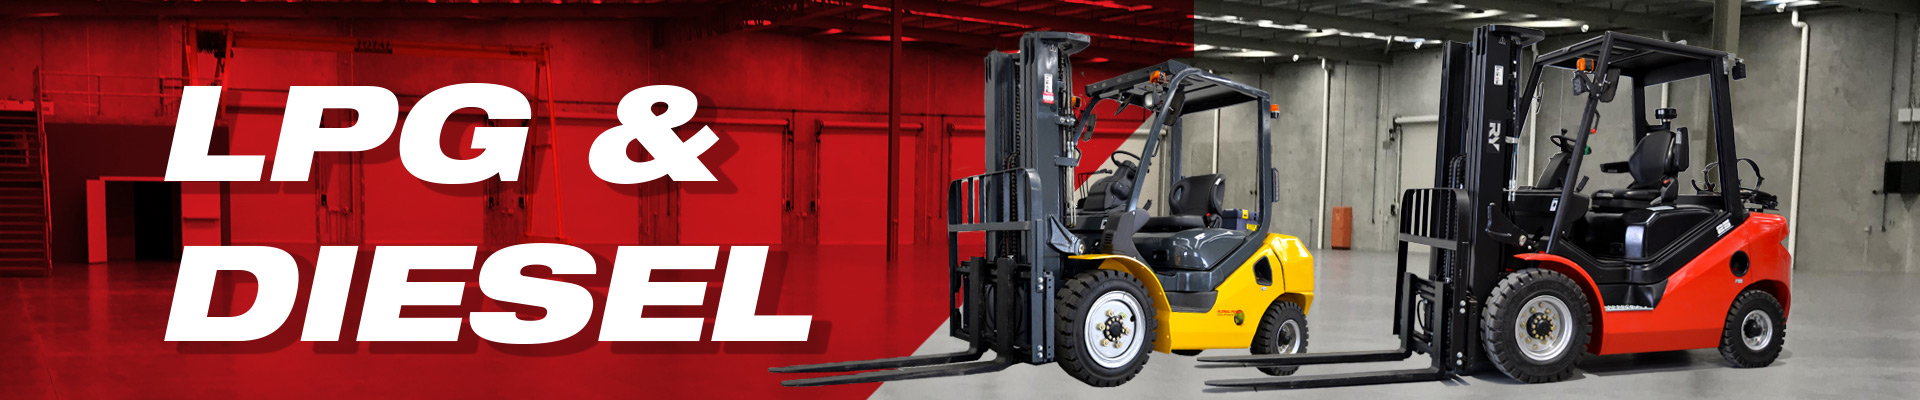 lpg and diesel forklifts for hrie and sale